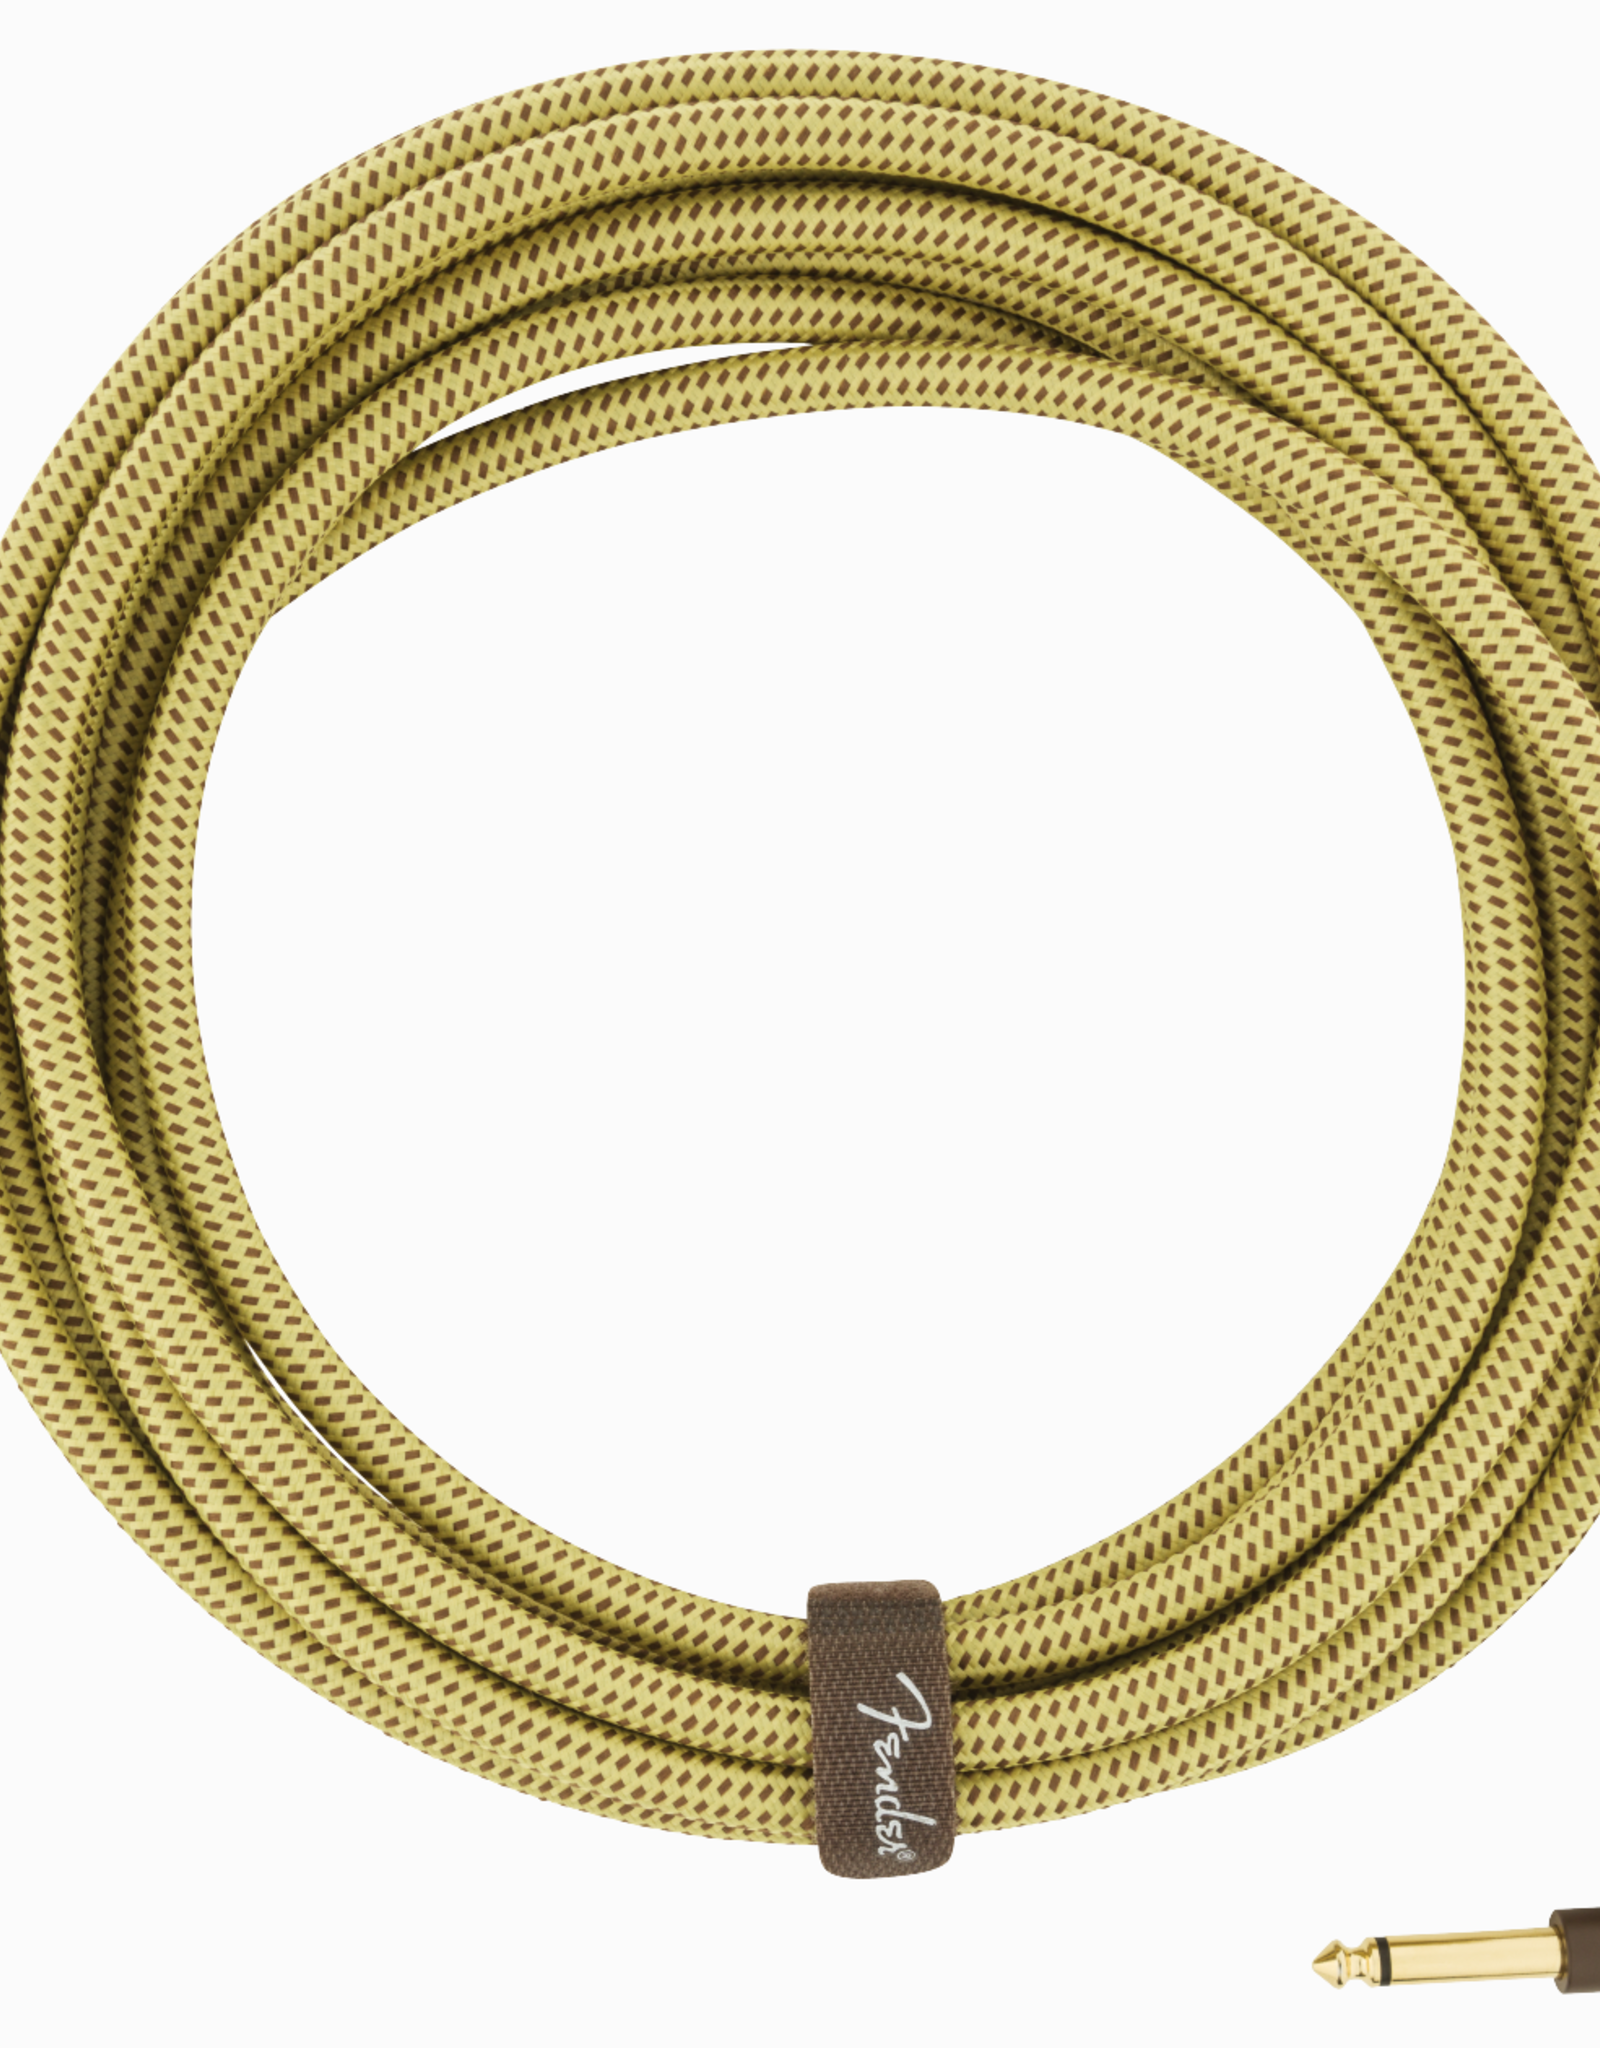 Fender Fender 18.6' Deluxe Series Cable, Tweed w/right angle